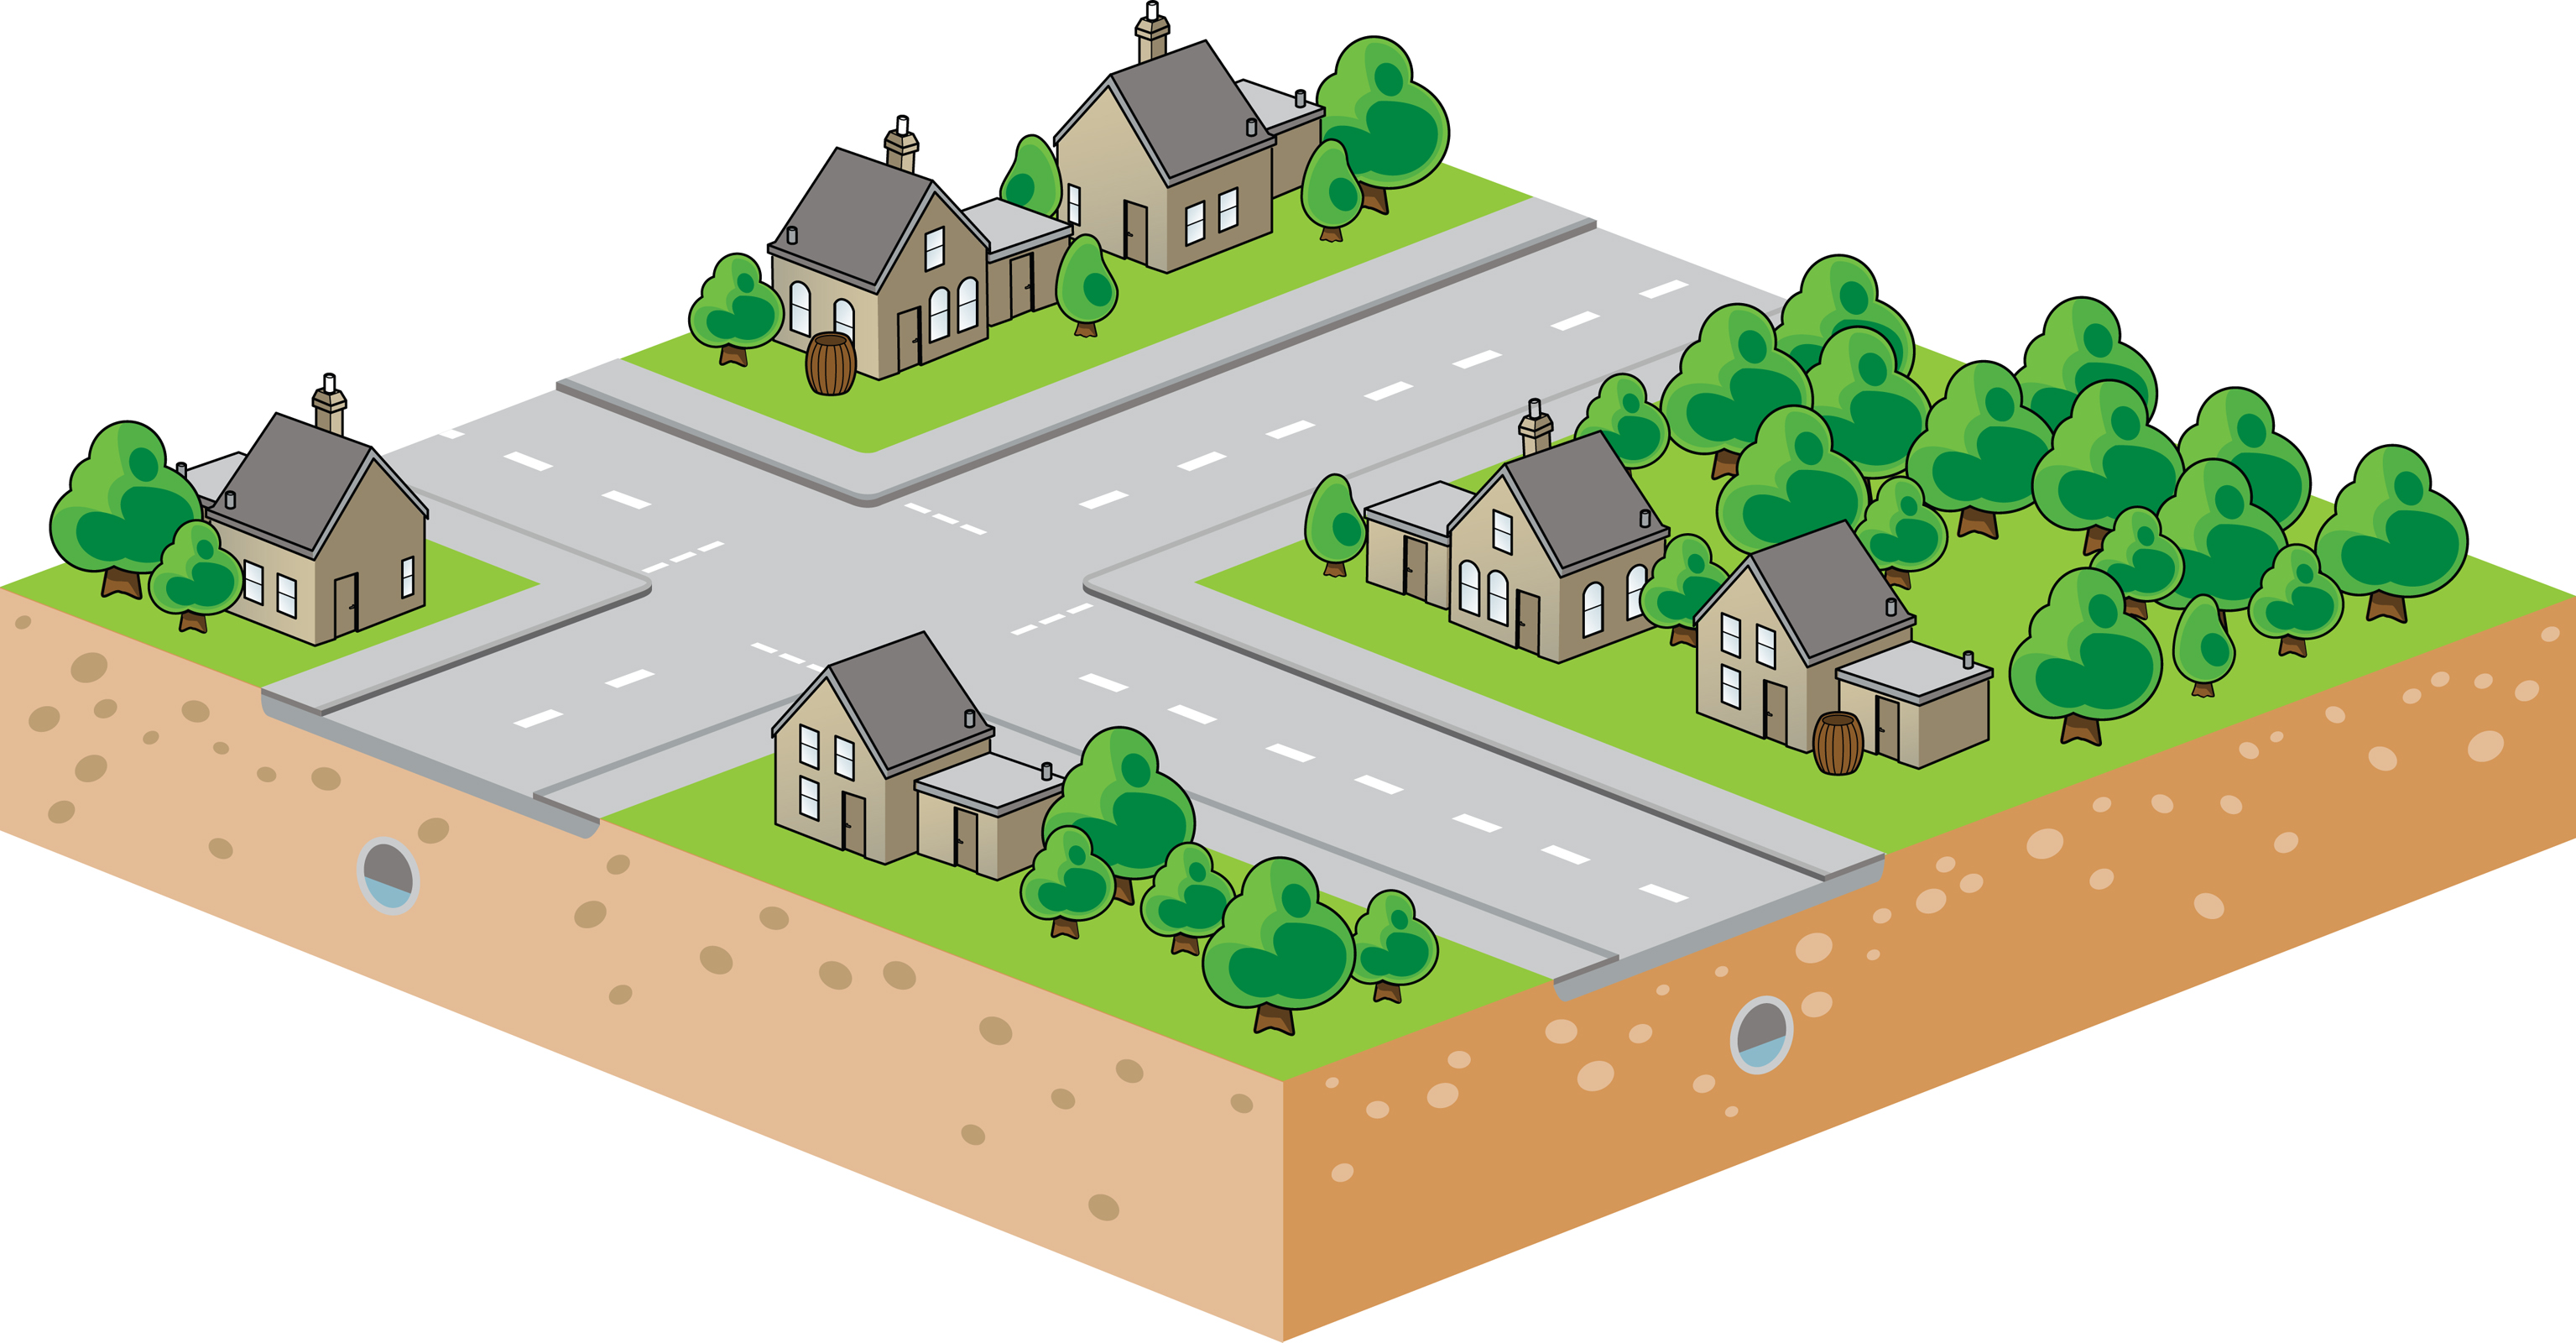 Street_Trees_Little_Houses_Model_Neighbourhood.jpg